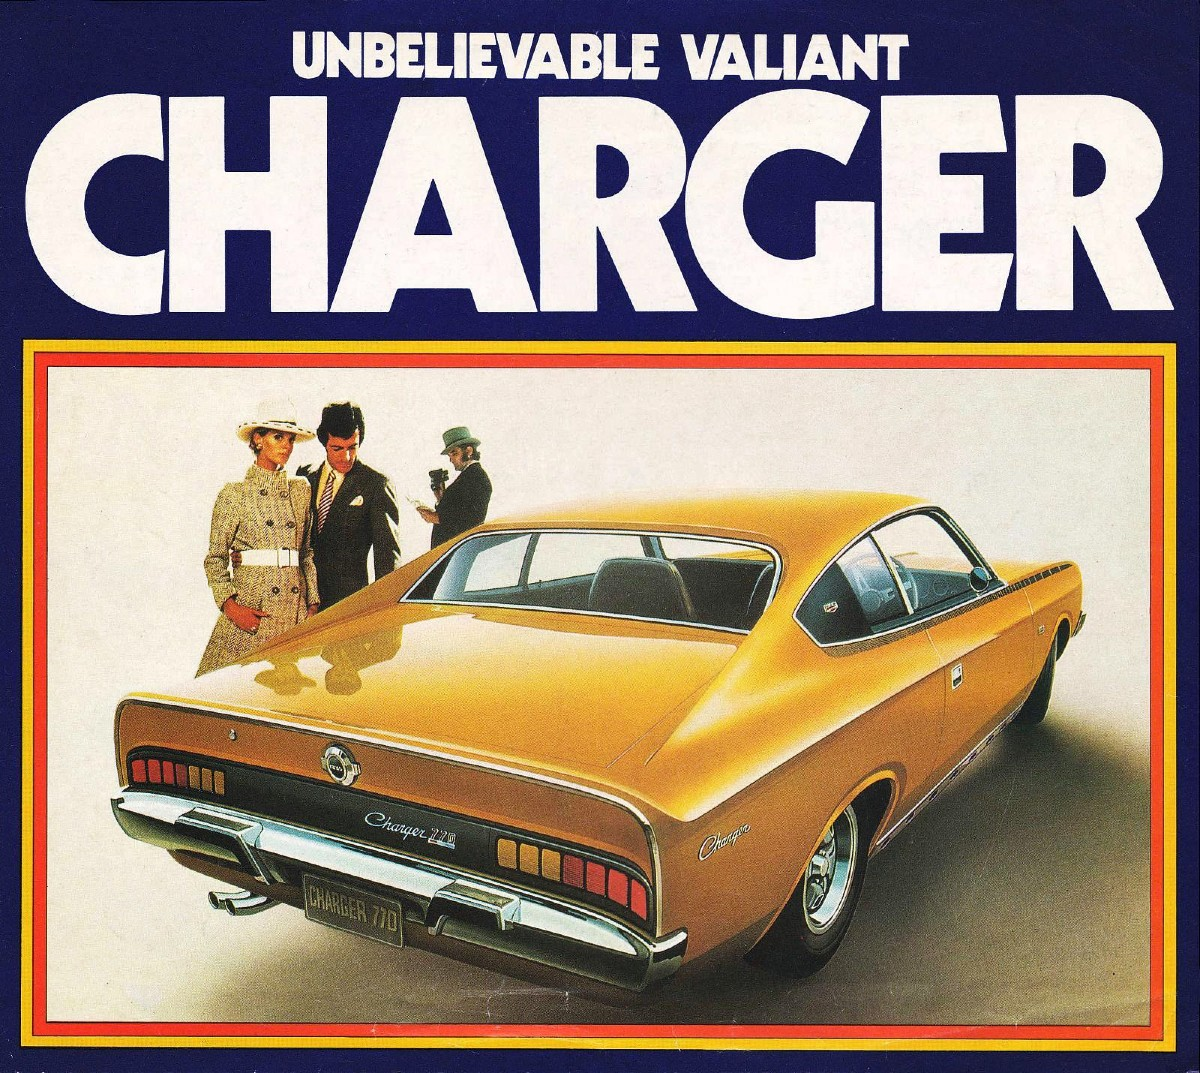 1971 Valiant Charger 5